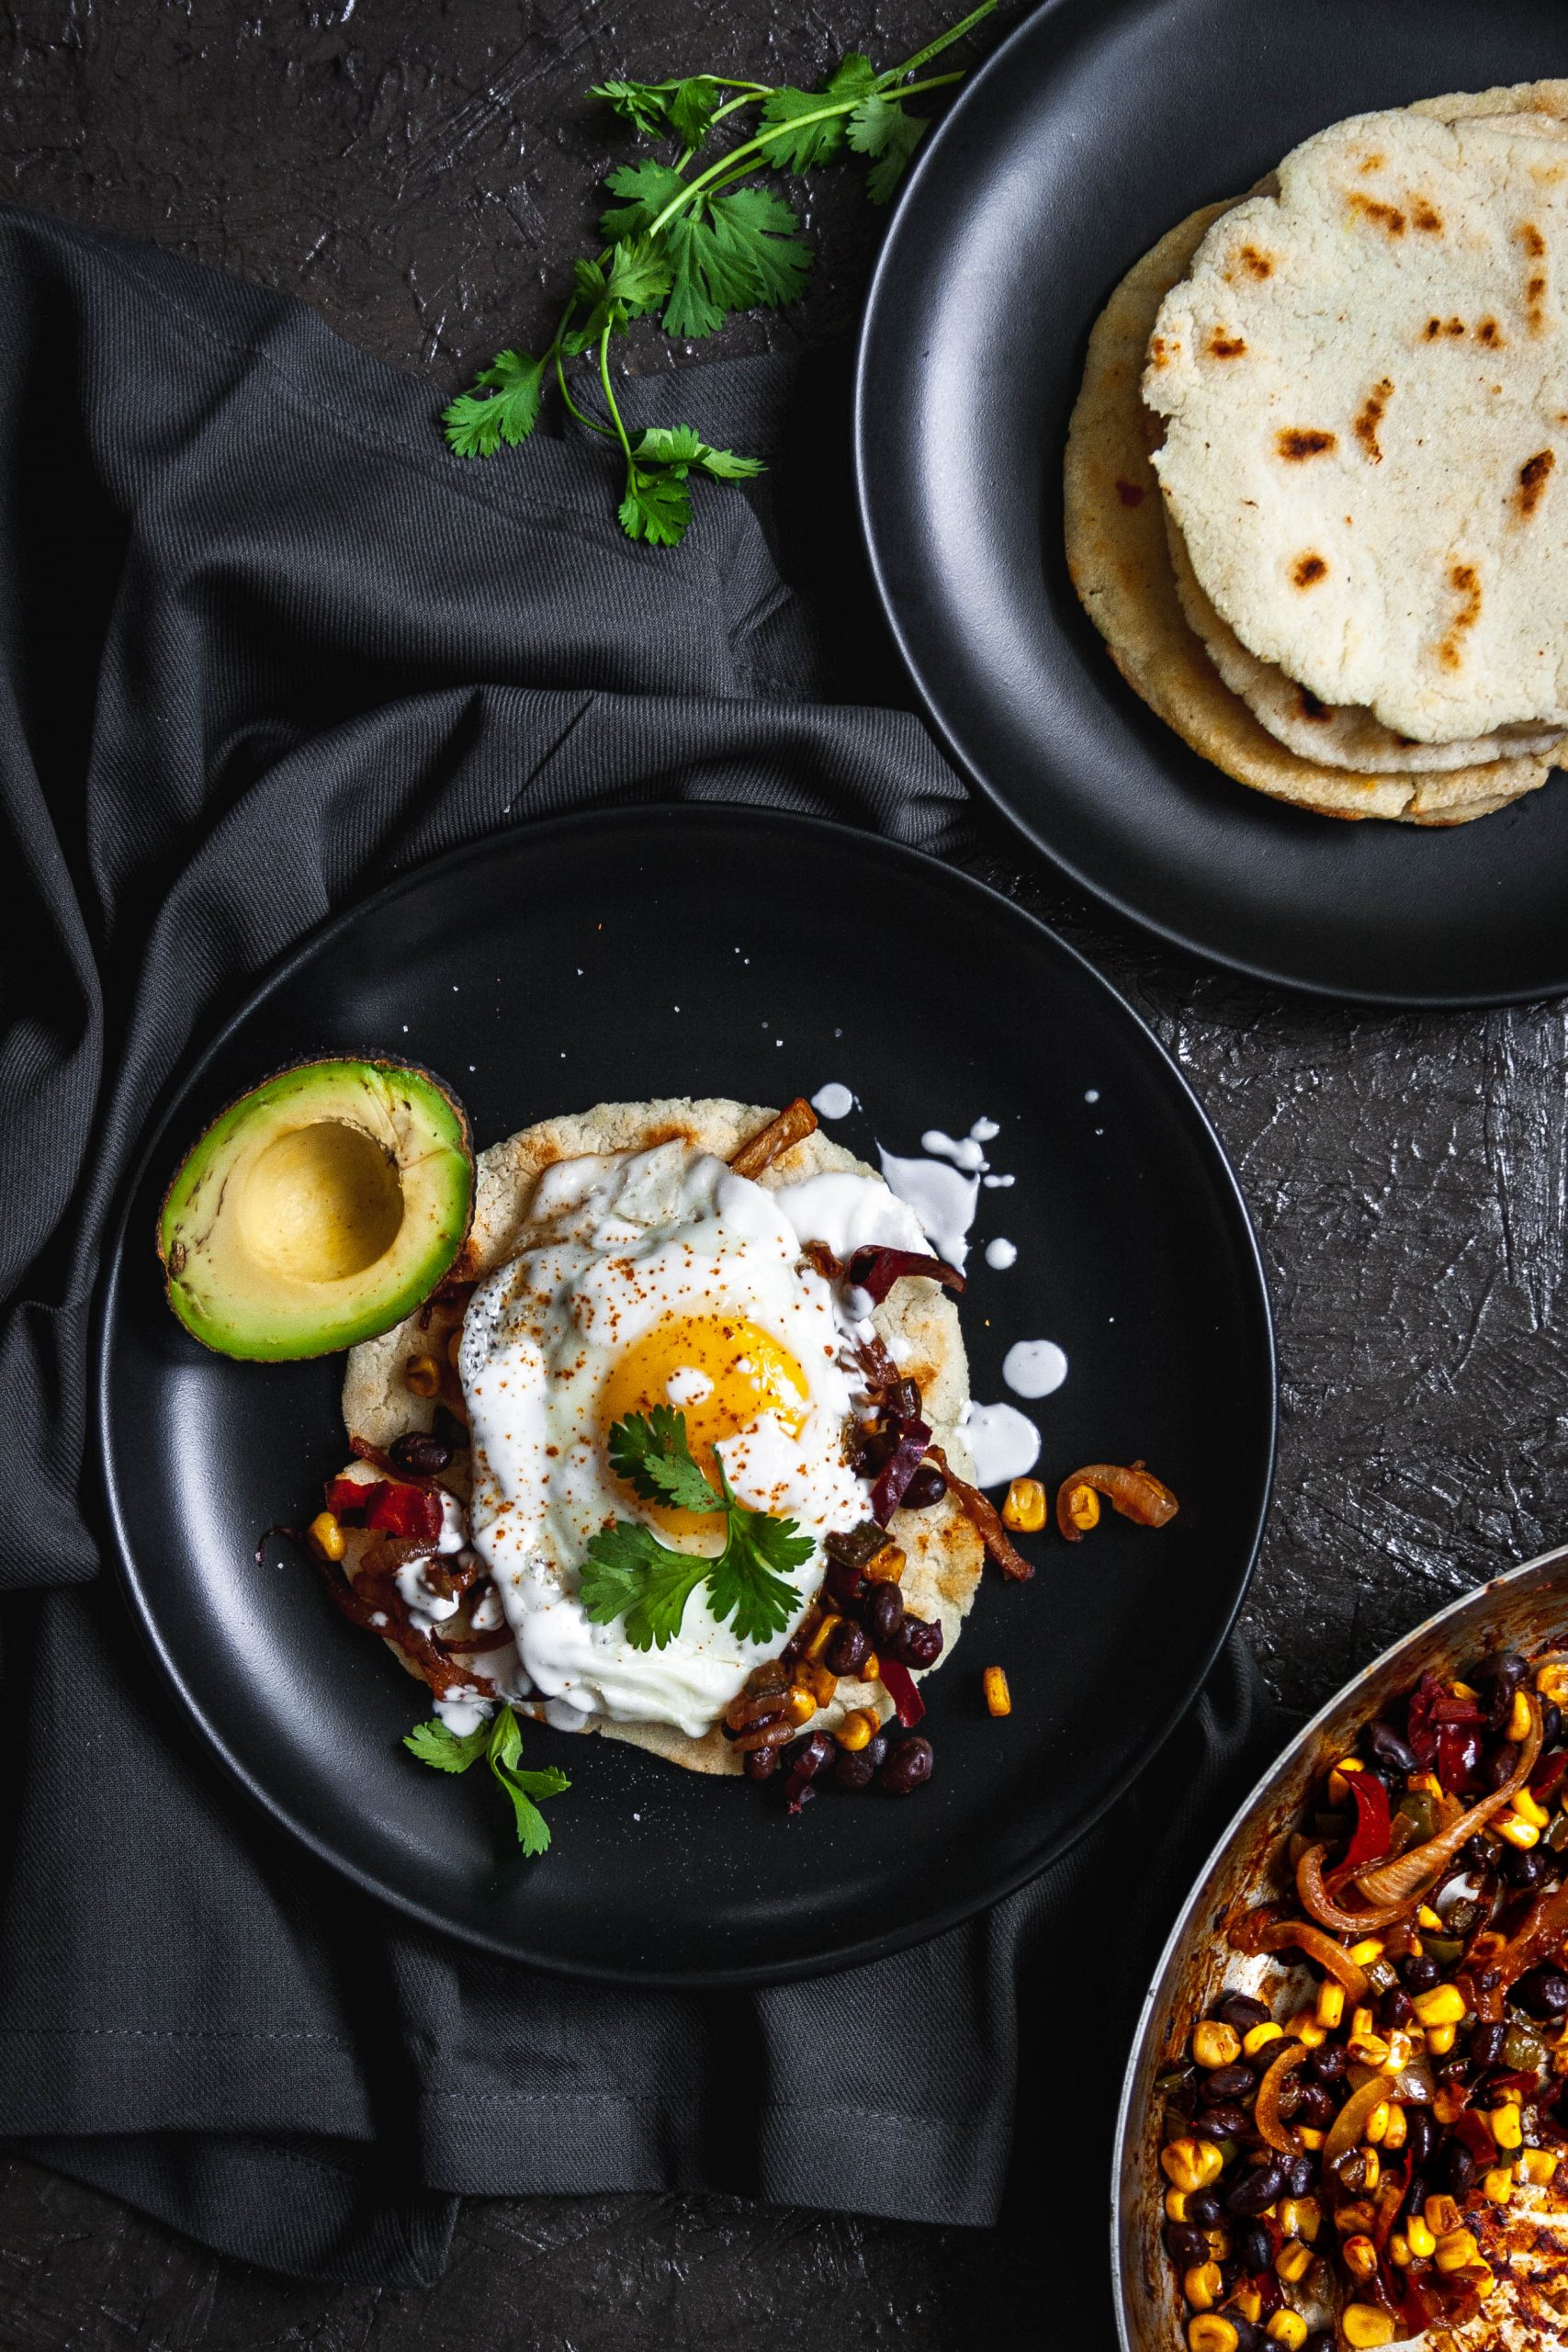 Food photography of a breakfast areap